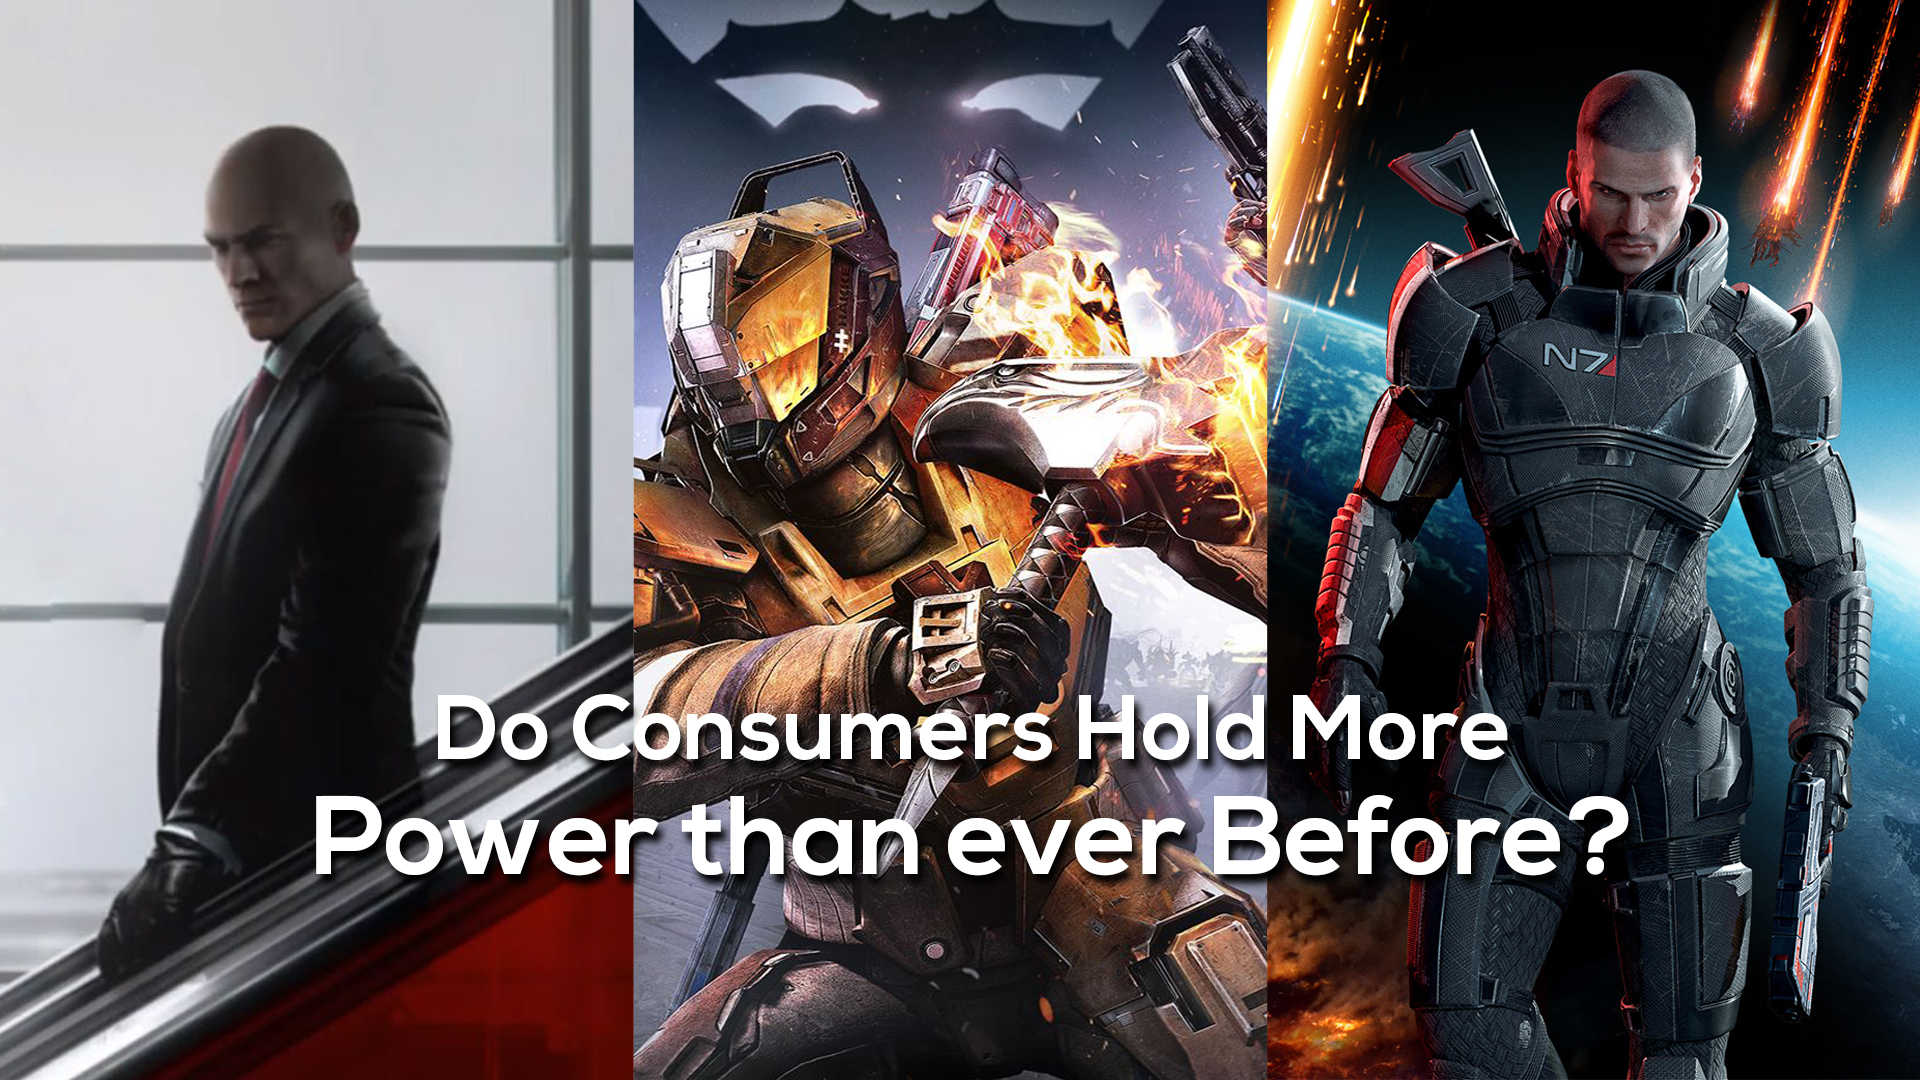 Do Consumers Hold More Power Than Ever Before in the Industry?